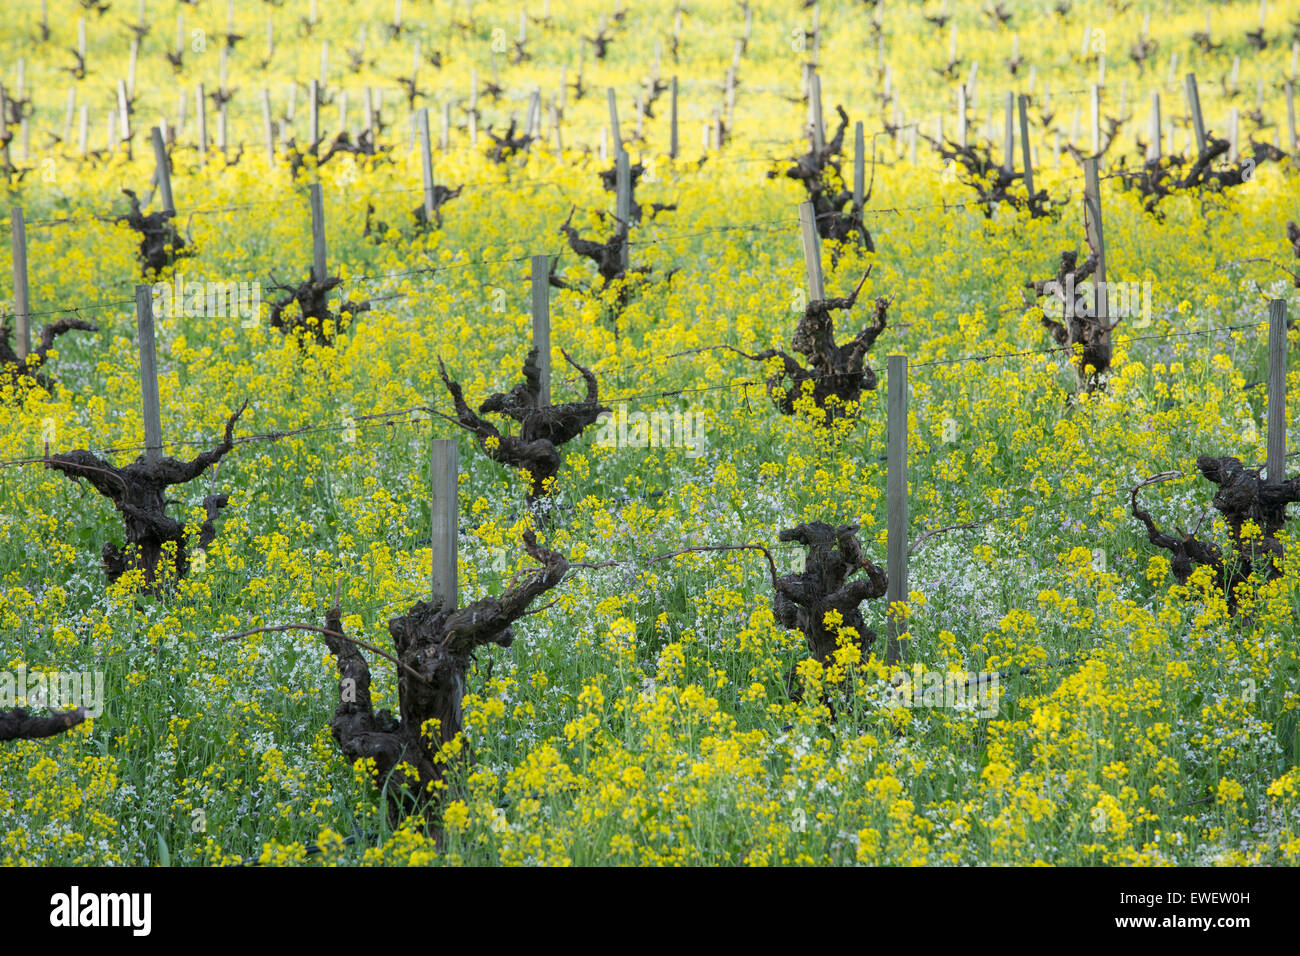 Field in Sonoma Valley with old grapevines, mustard flowers, and other wildflowers, Sonoma County, California, USA - Stock Image